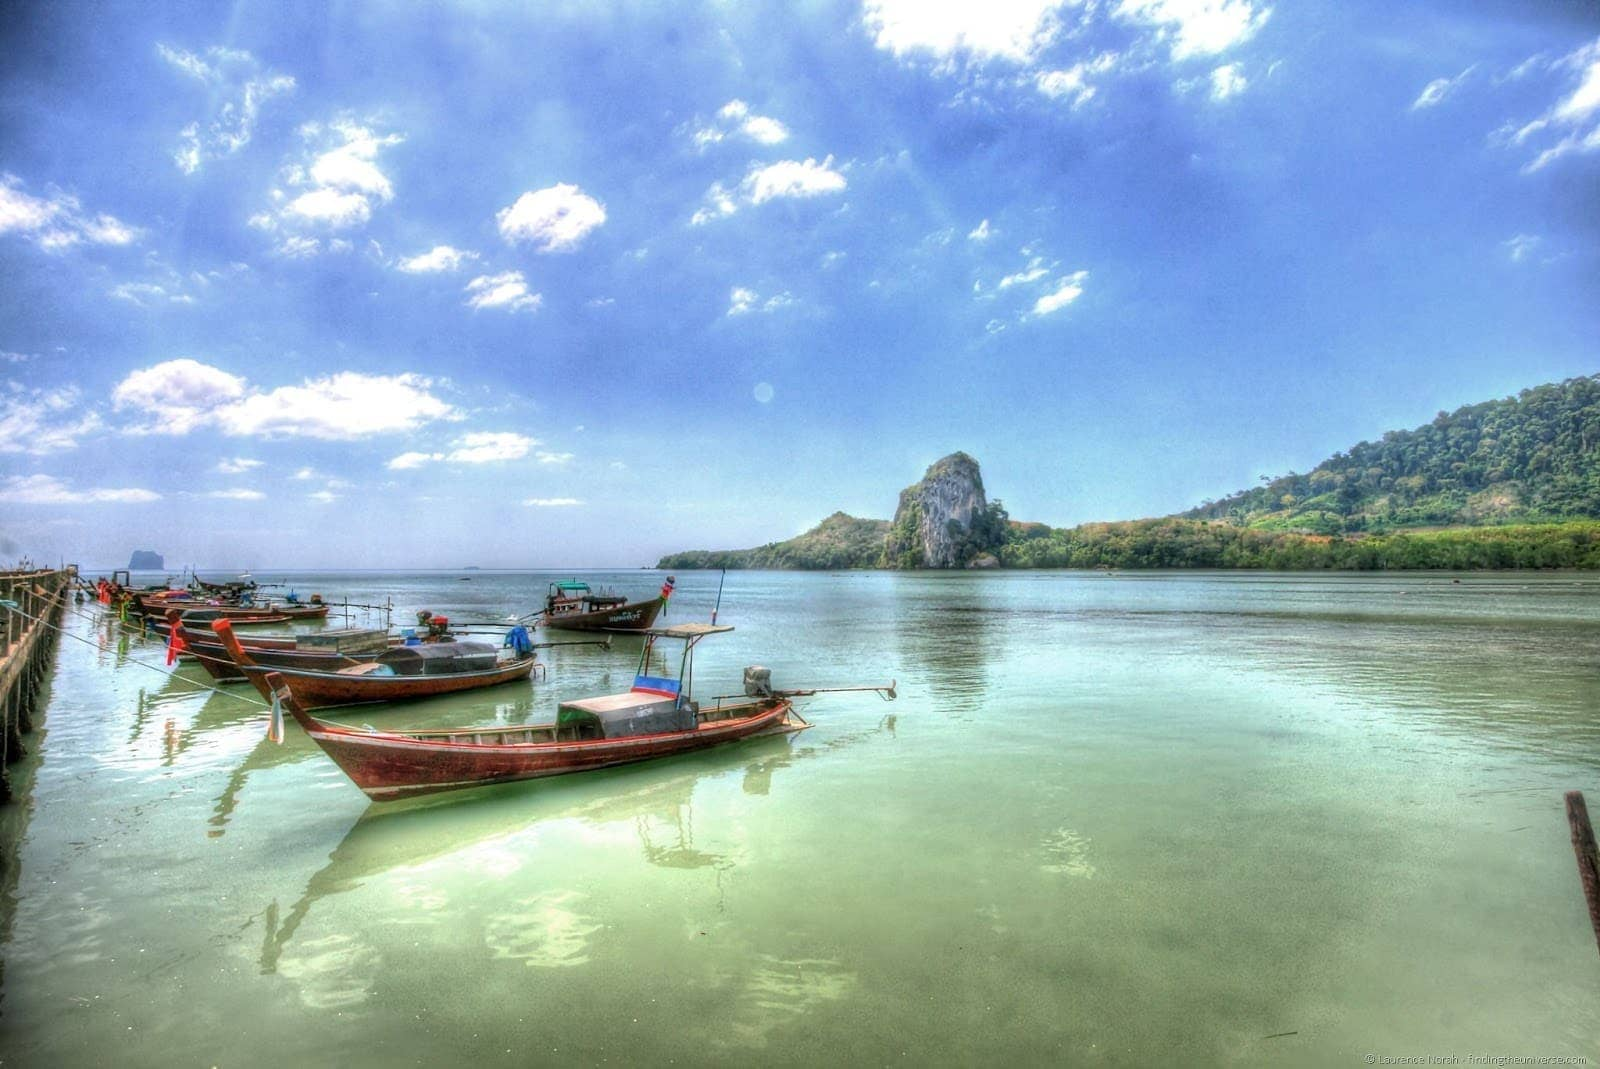 Fishing boats lined up at Koh libong pier Trang Thailand